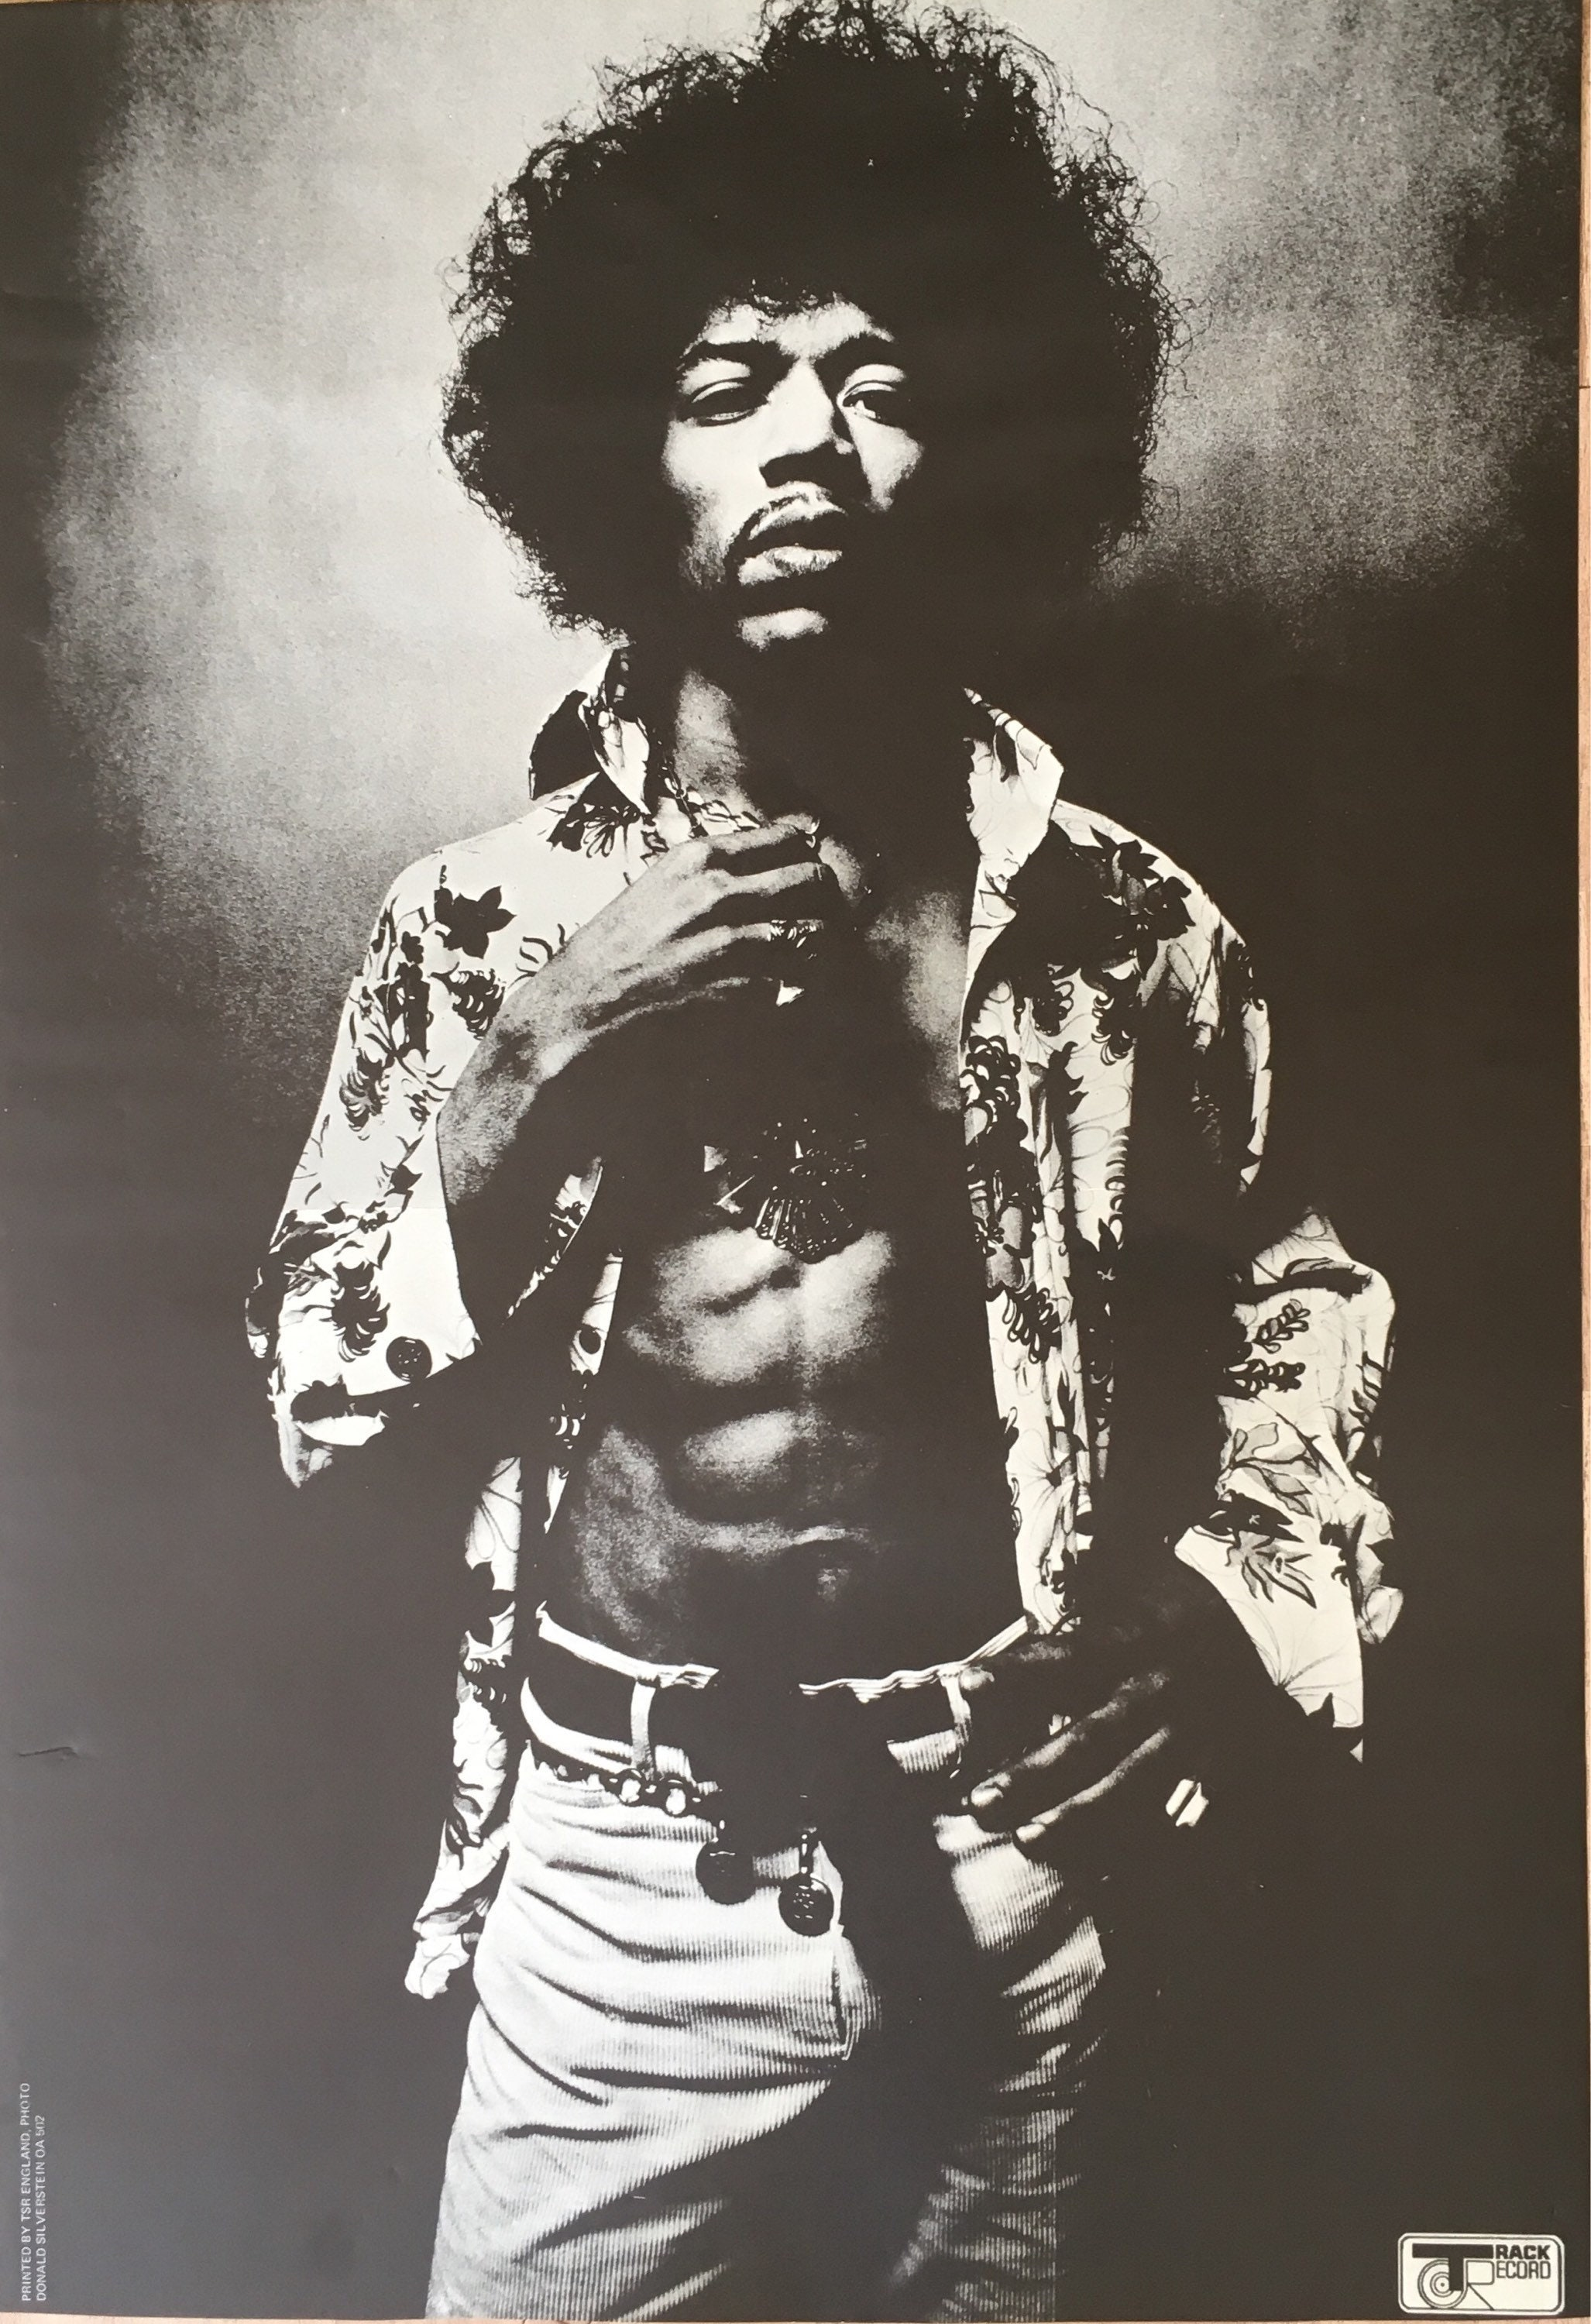 Collectible Jimi Hendrix Poster Rare Authentic Donald Silverstein 1967 Track Record OA502 Printed In England Black And White